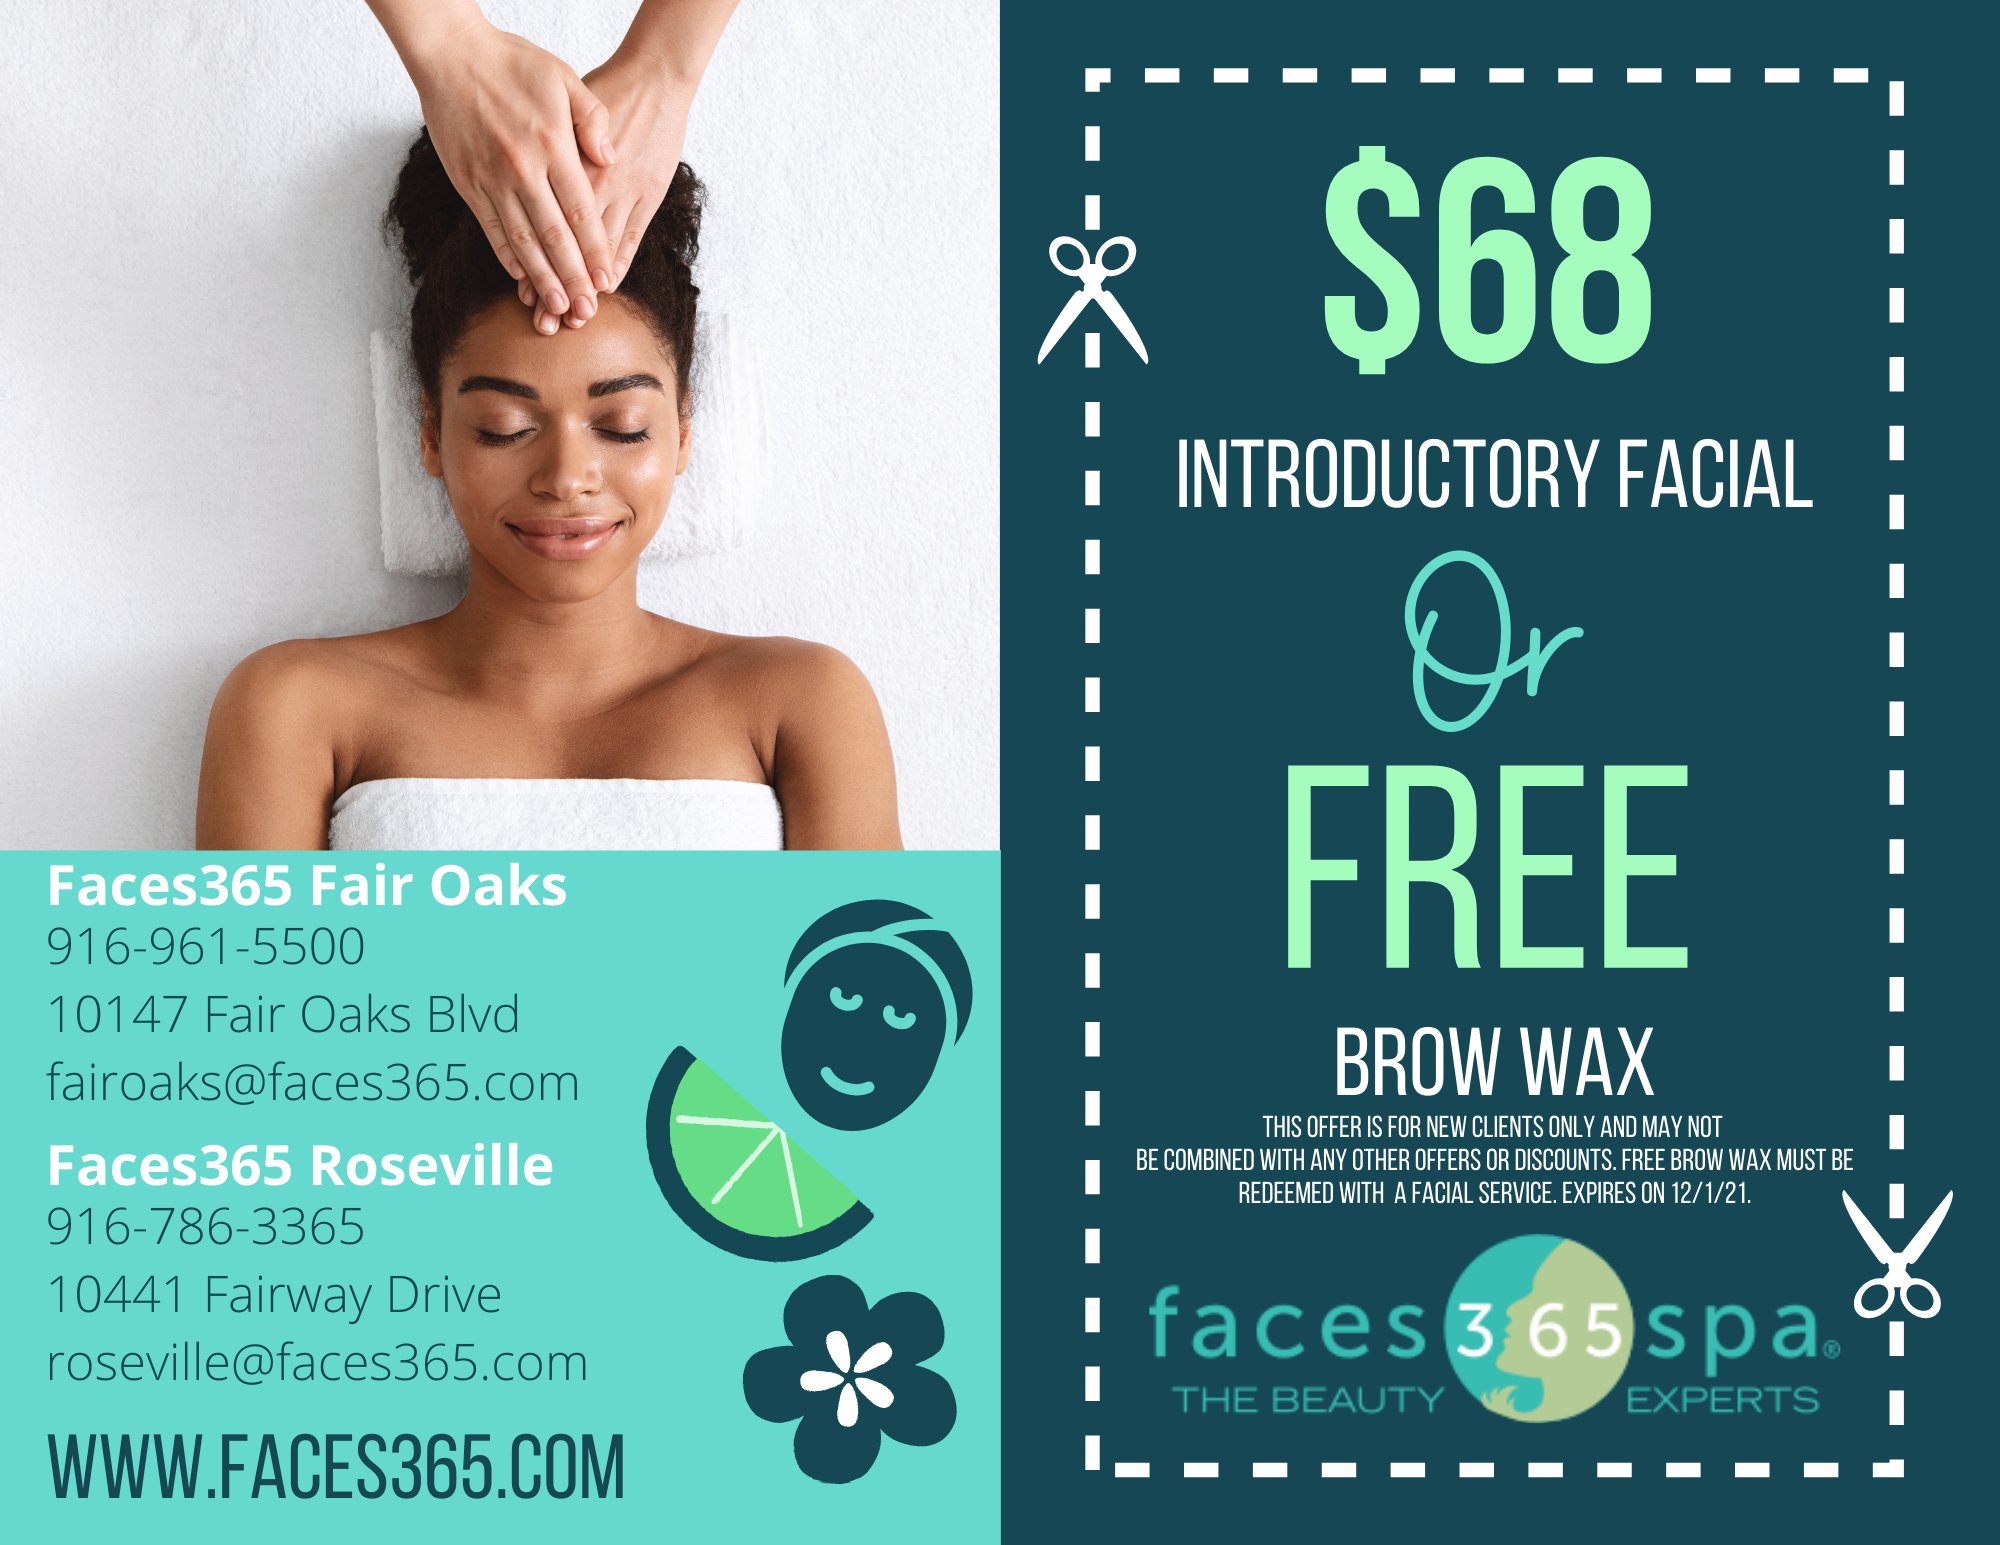 Coupon for free brow wax or $68 vitamin c facial for first time guests.